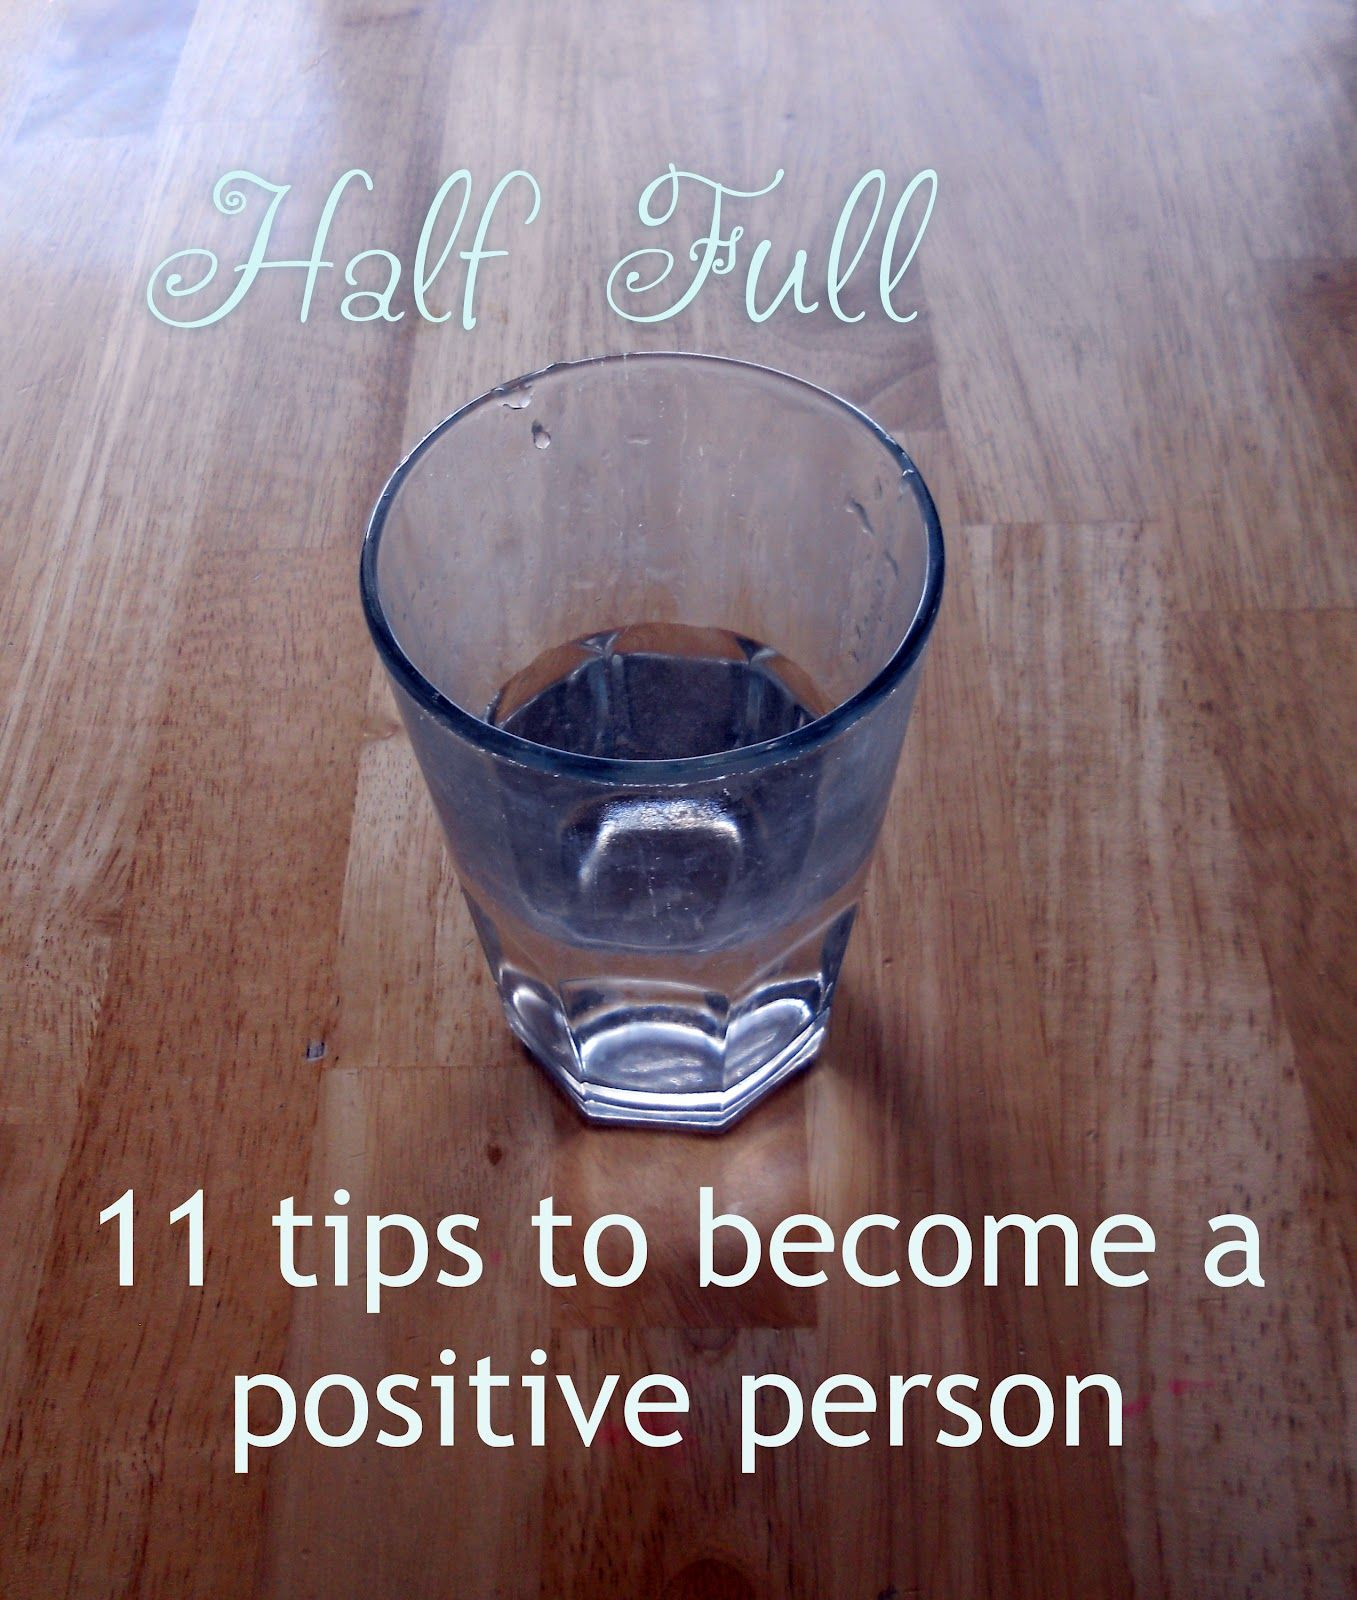 Prettiful Designs: Becoming a Positive Person - 11 Helpful Steps